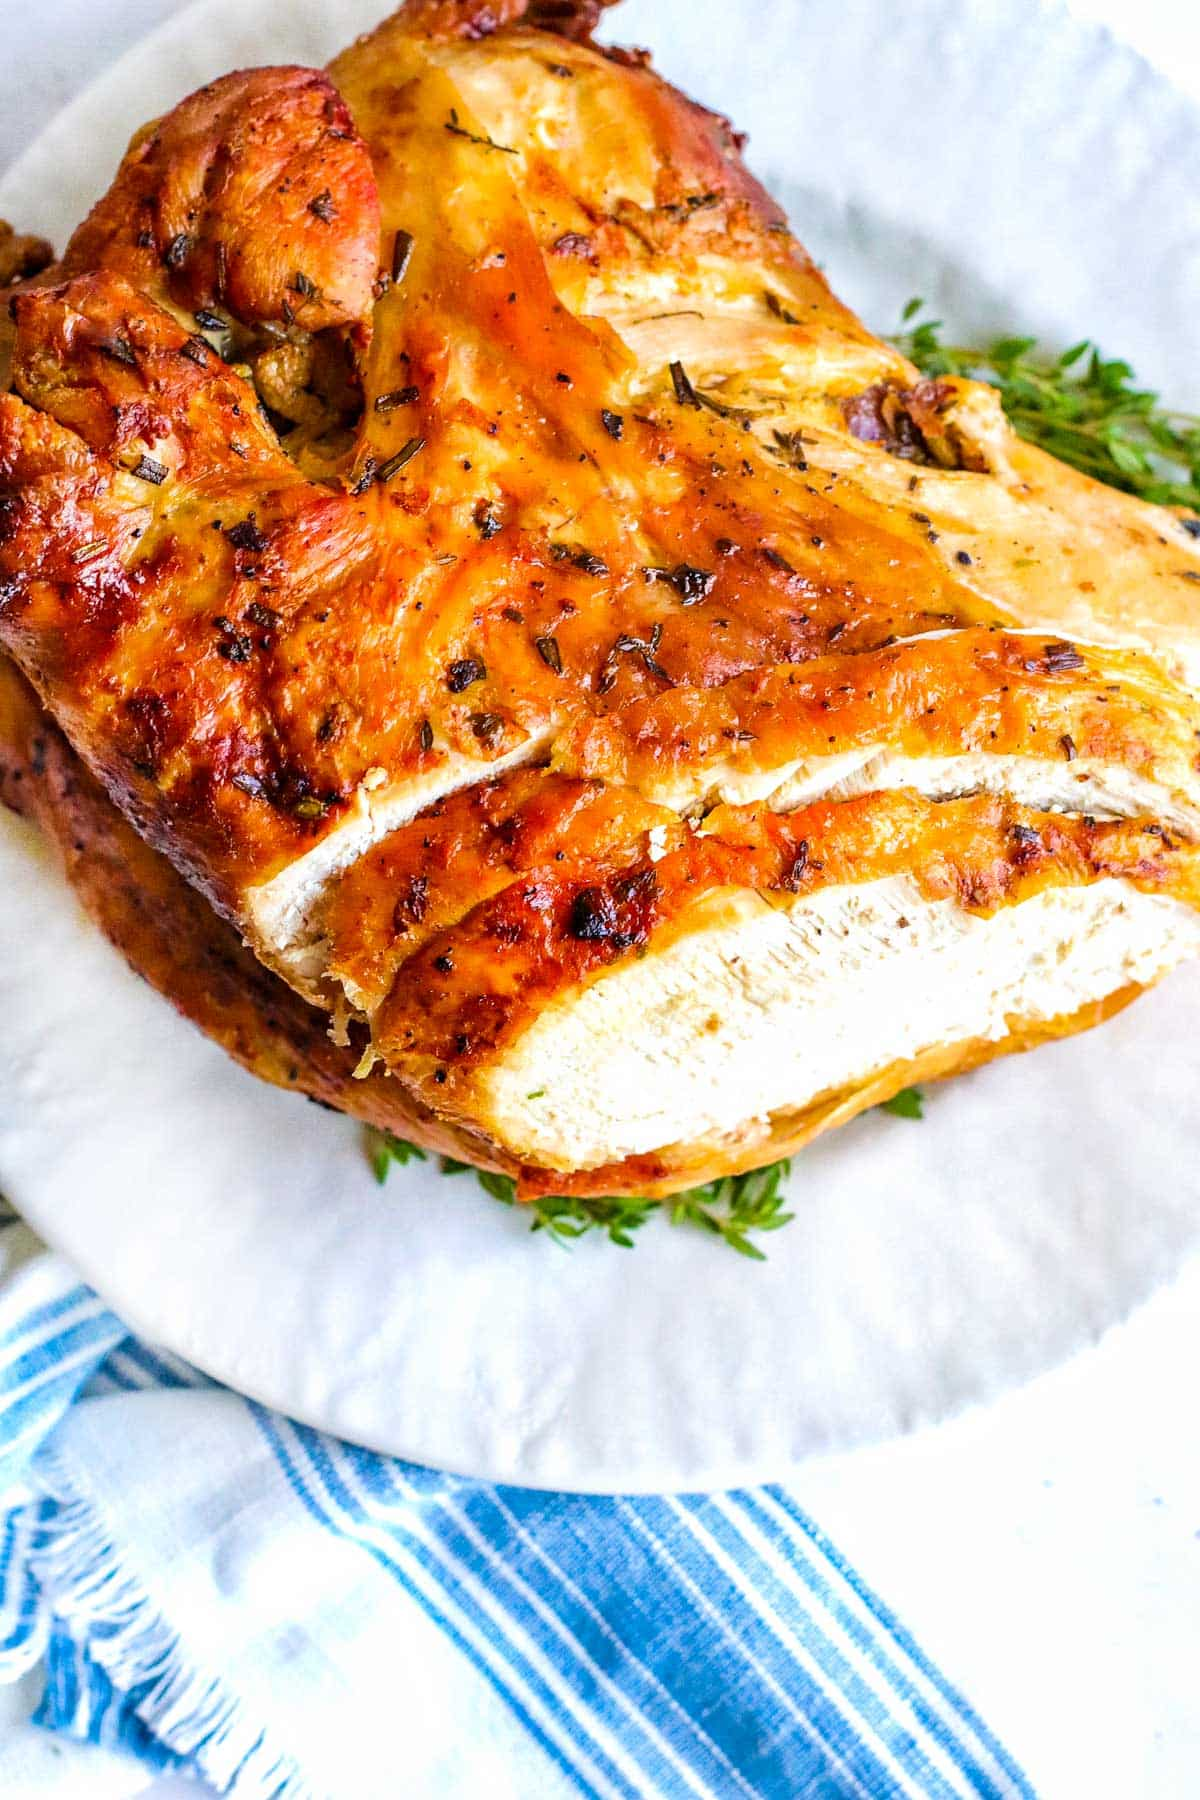 fully cooked golden brown turkey breast with crisp outside skin